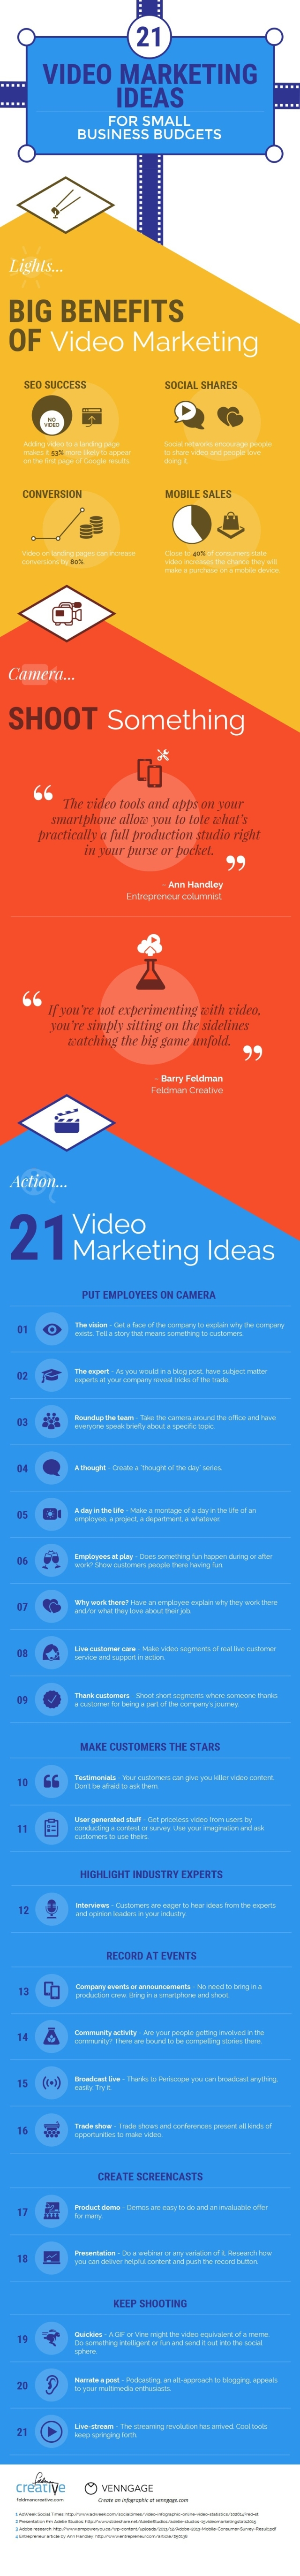 21 Video Marketing Ideas for Small Businesses on a Budget